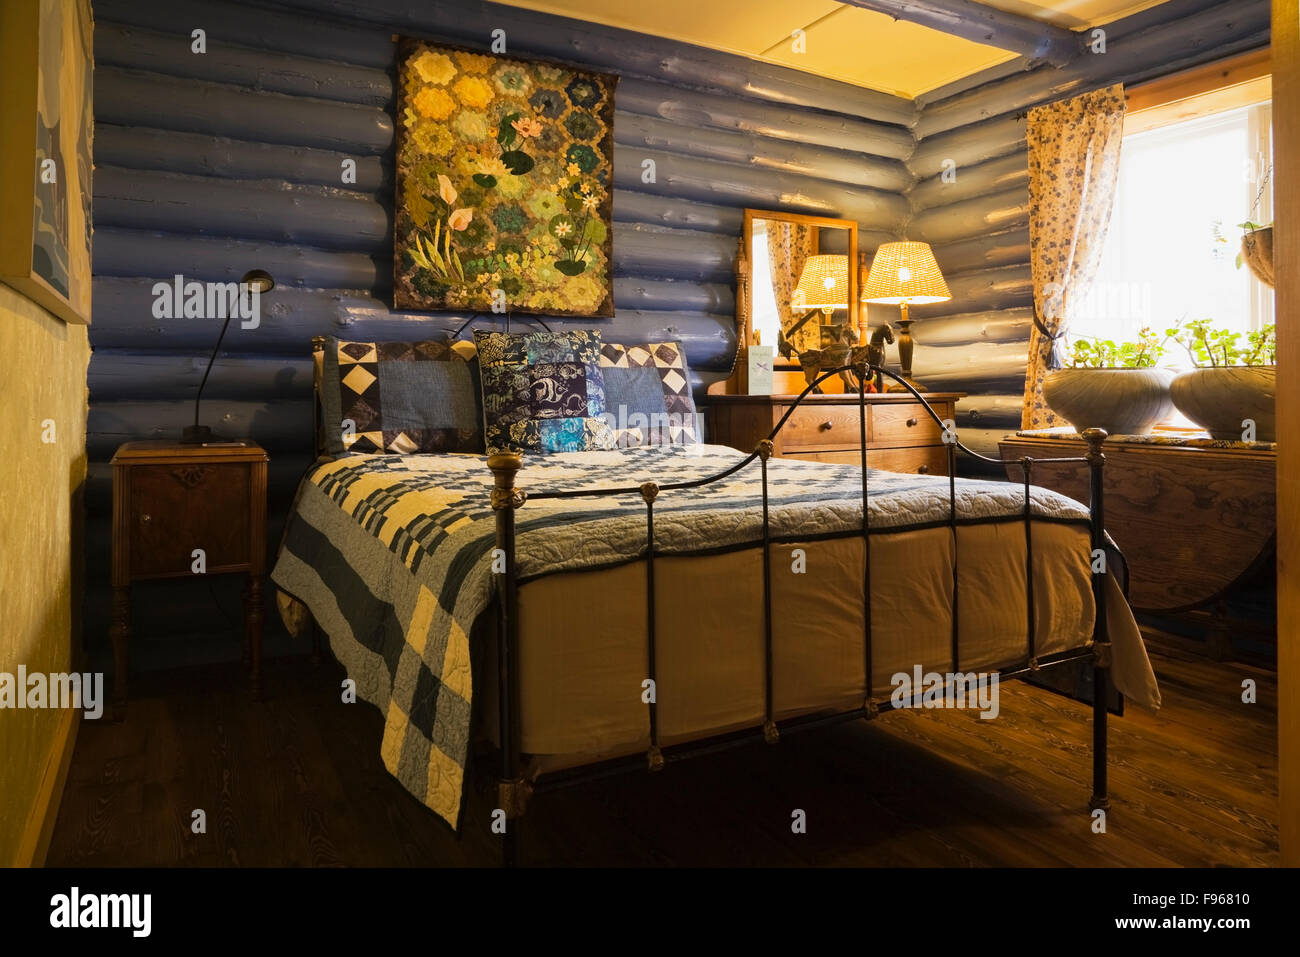 Country Cottage Bedrooms Model Property guest bedroom inside a country cottage style residential log home